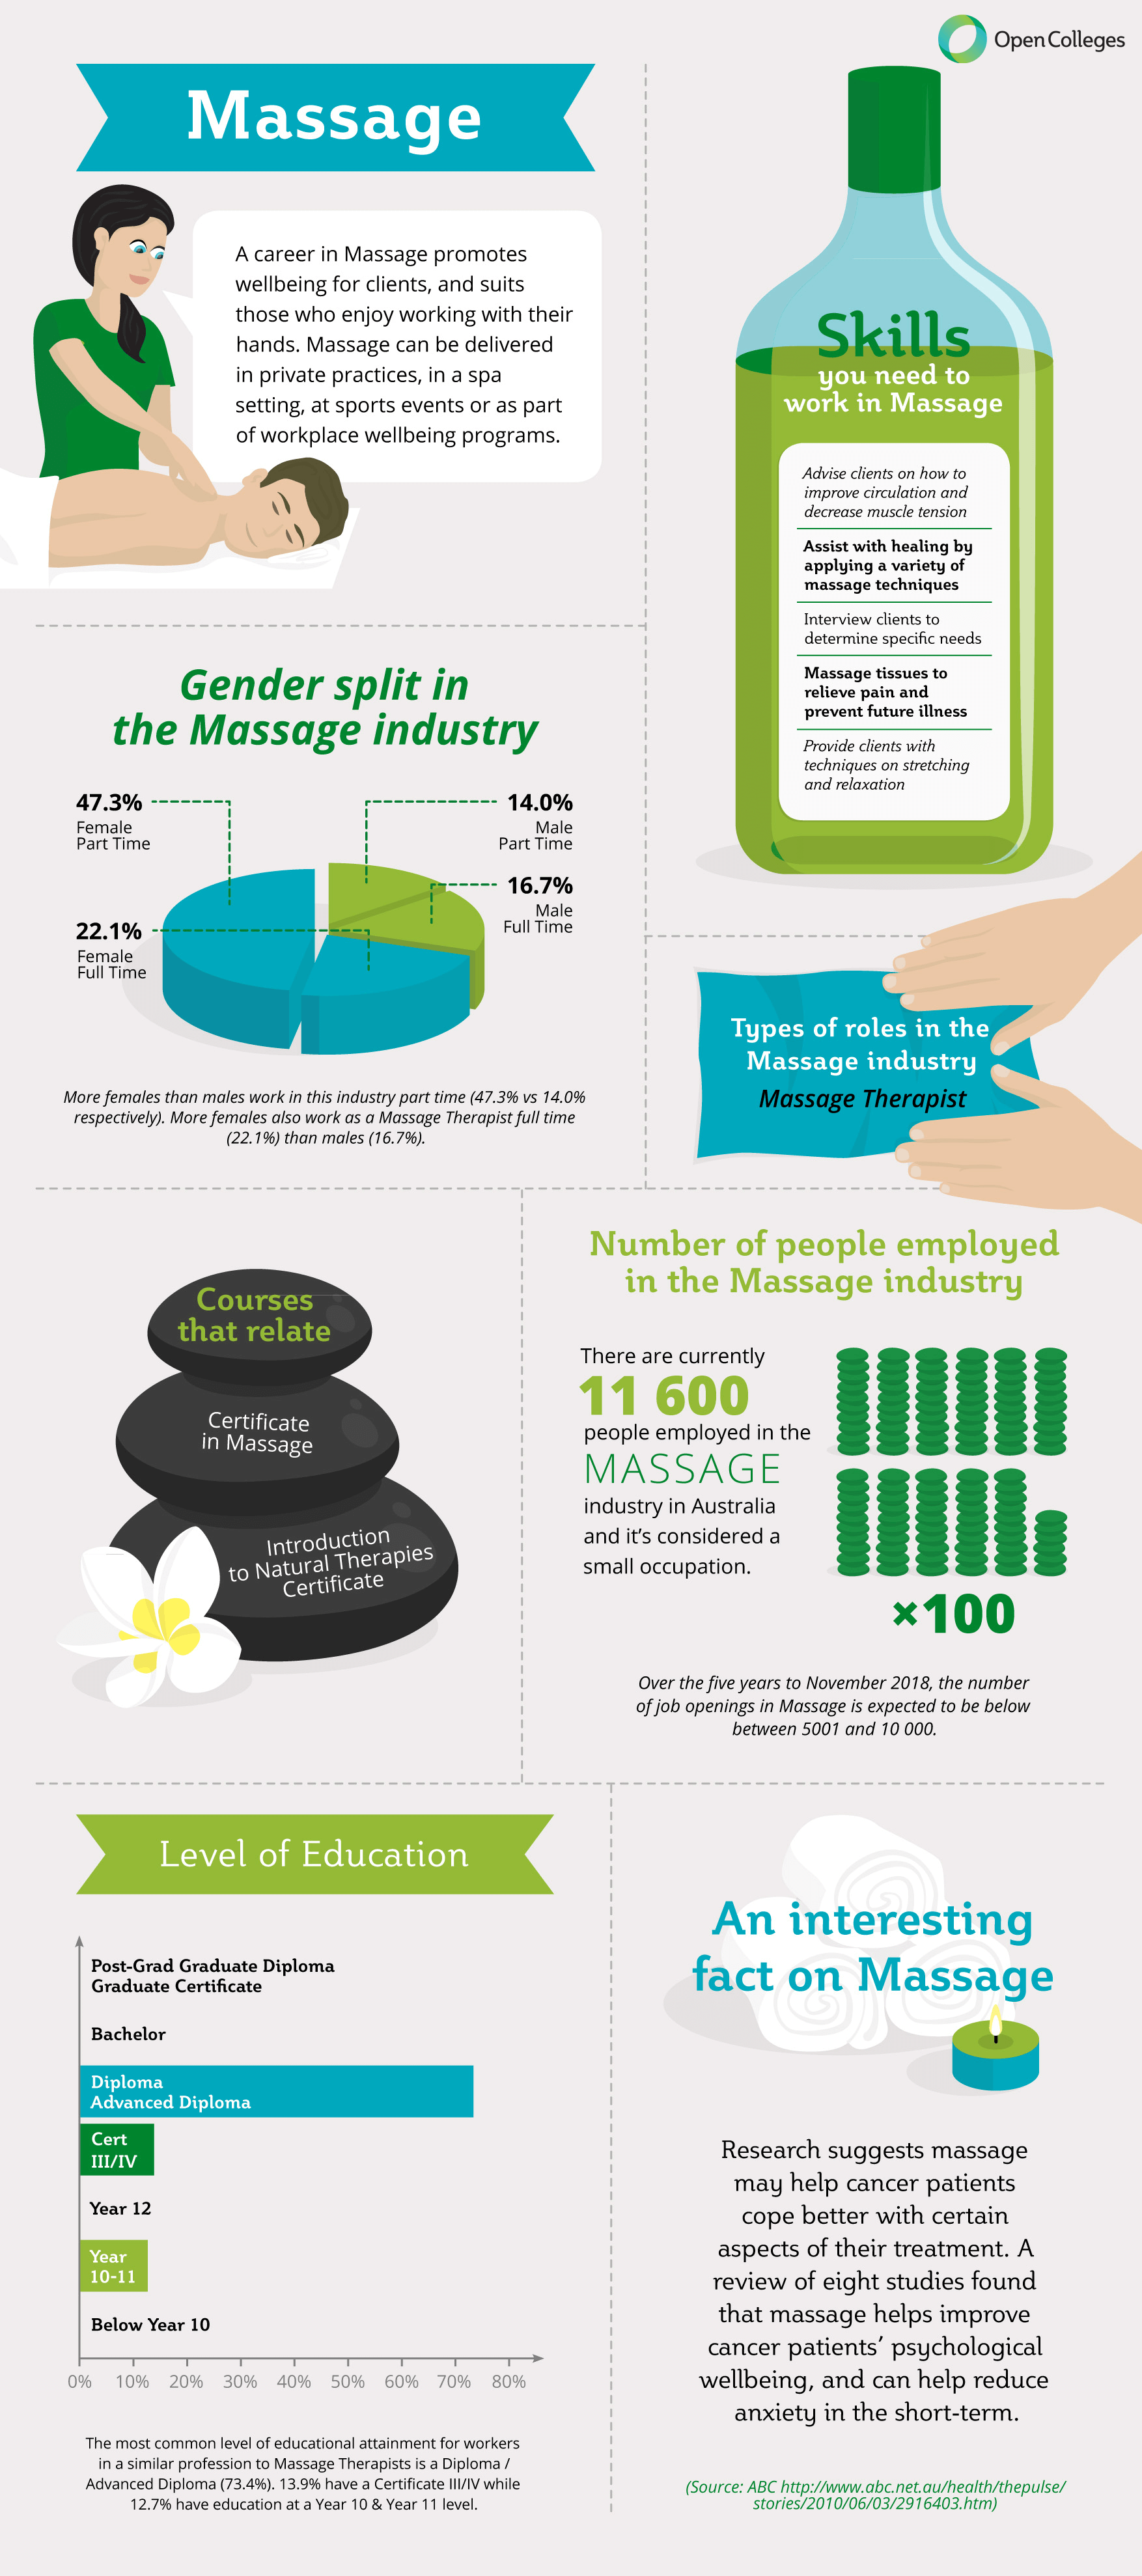 Your Career in the Massage Therapy Industry